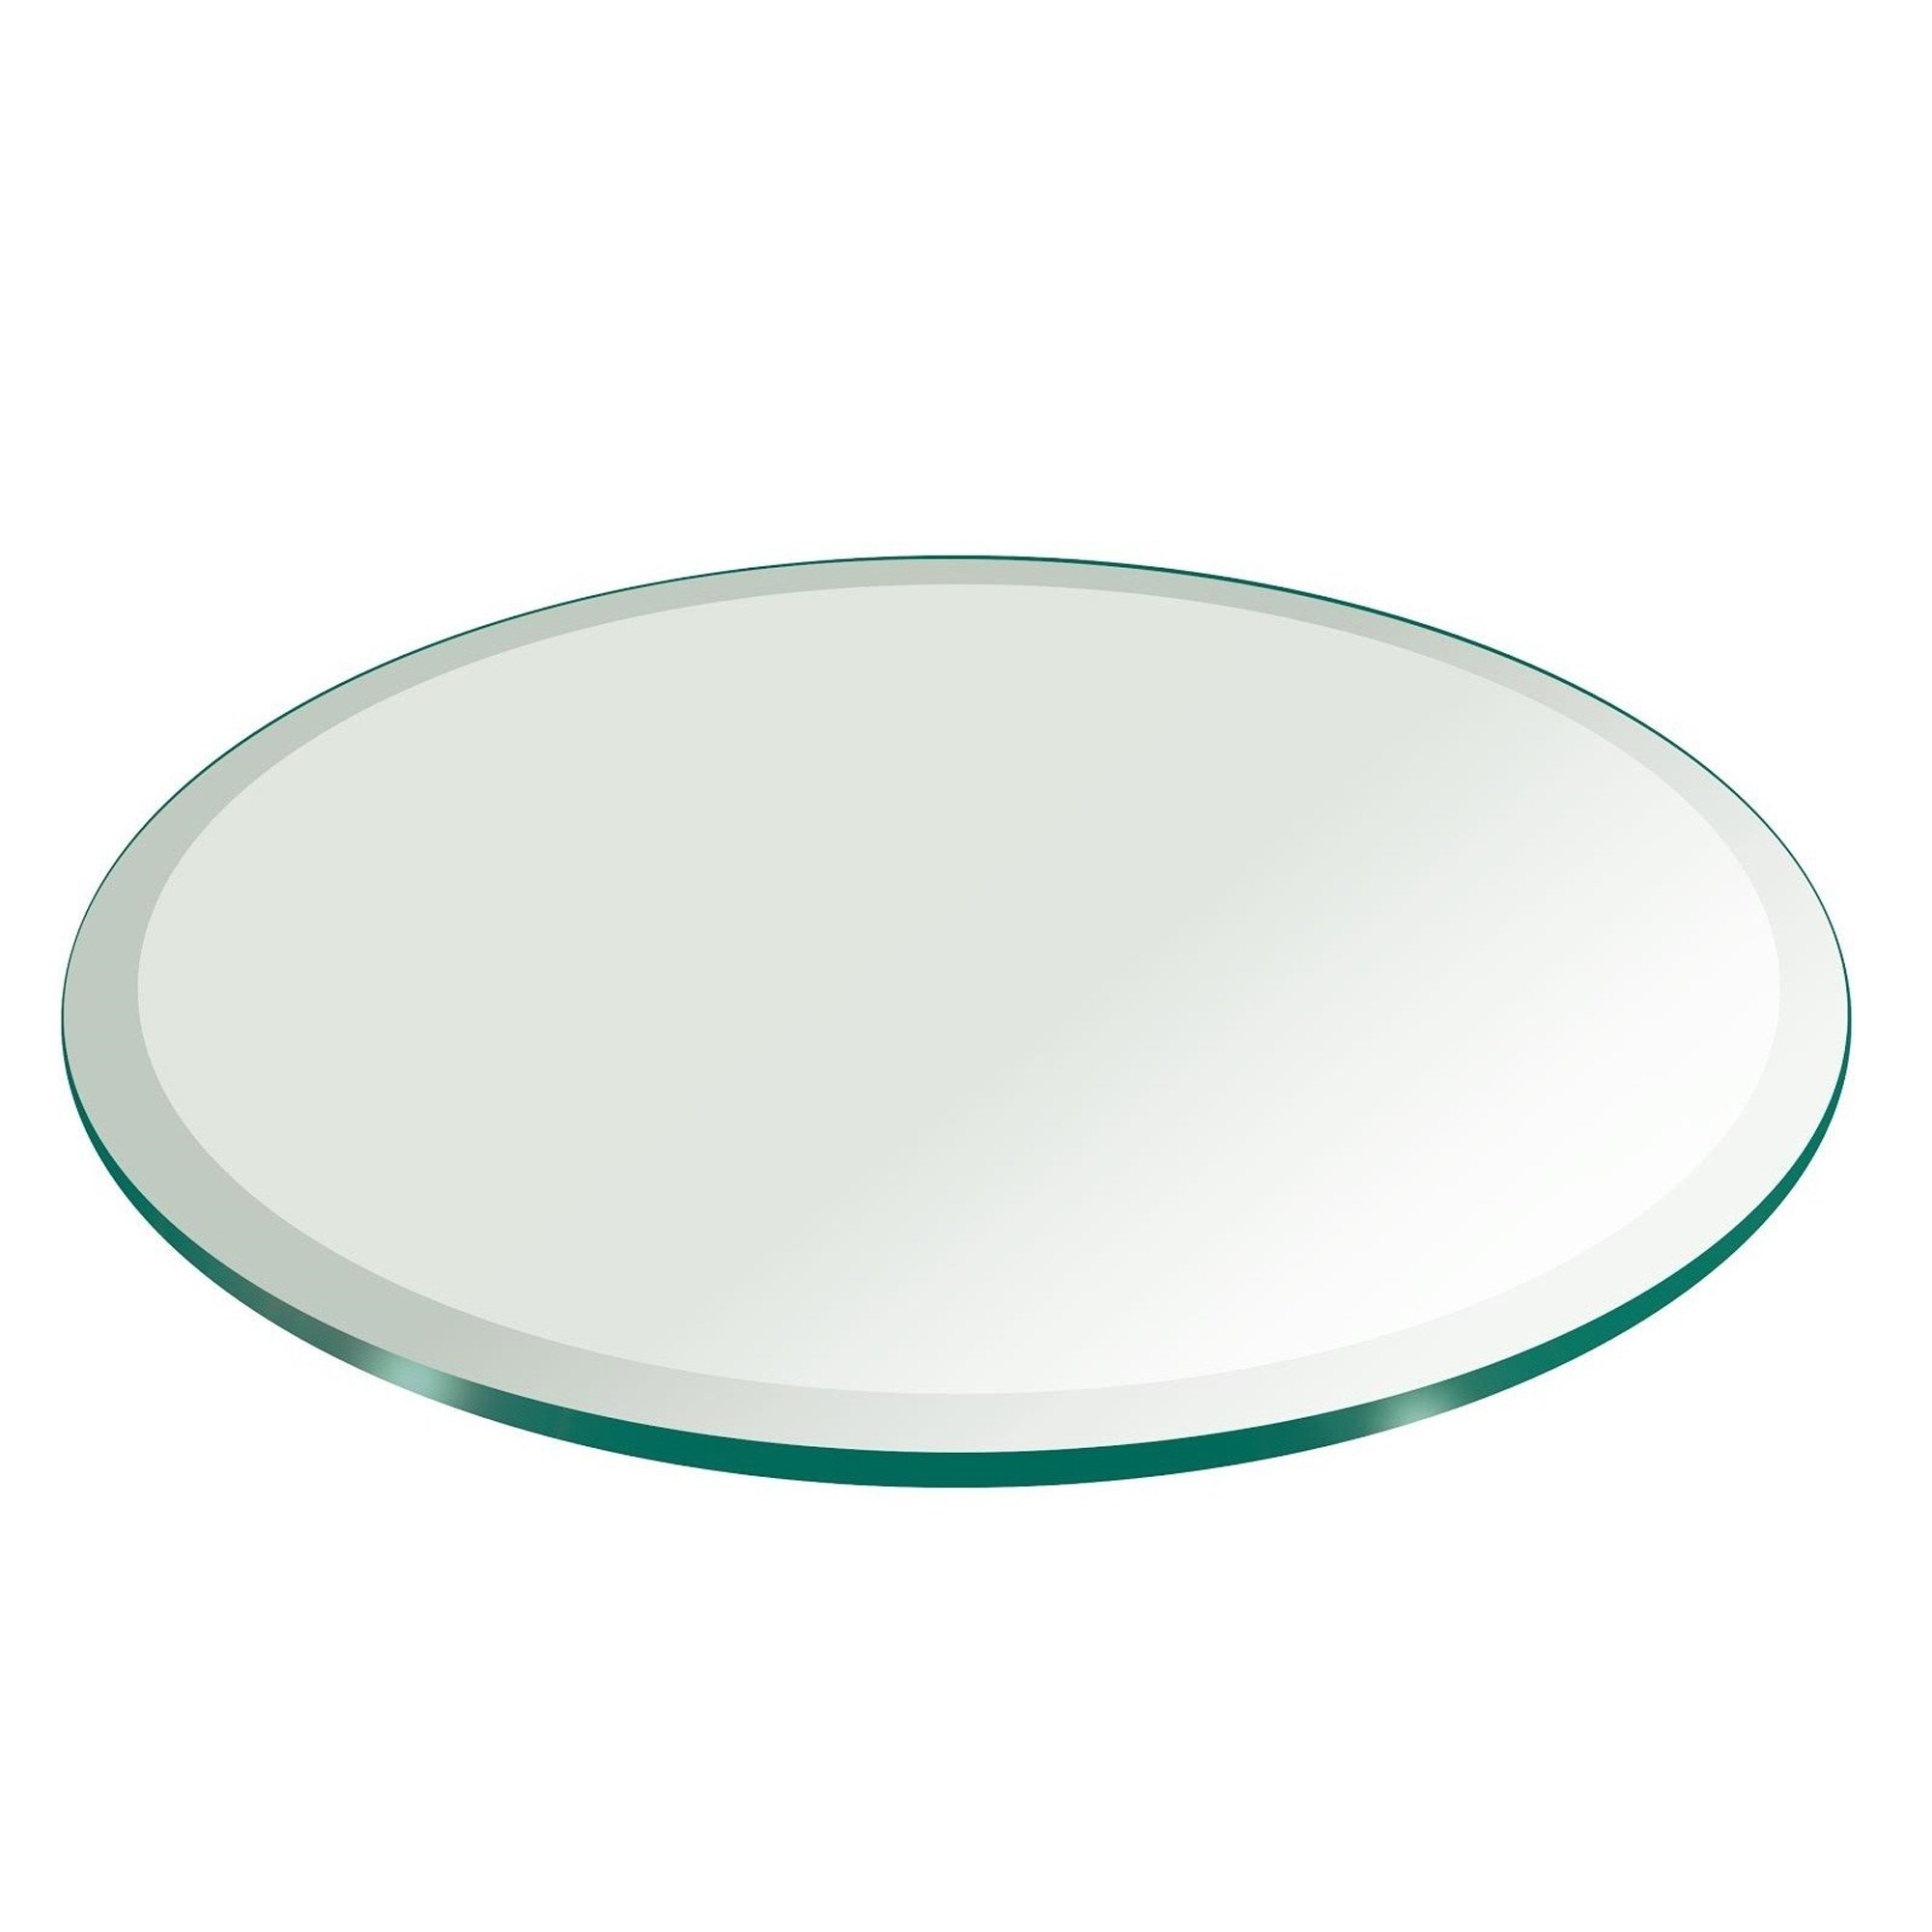 26'' Inch Round Glass Table Top 1/2'' Thick Tempered Beveled Edge by Fab Glass and Mirror